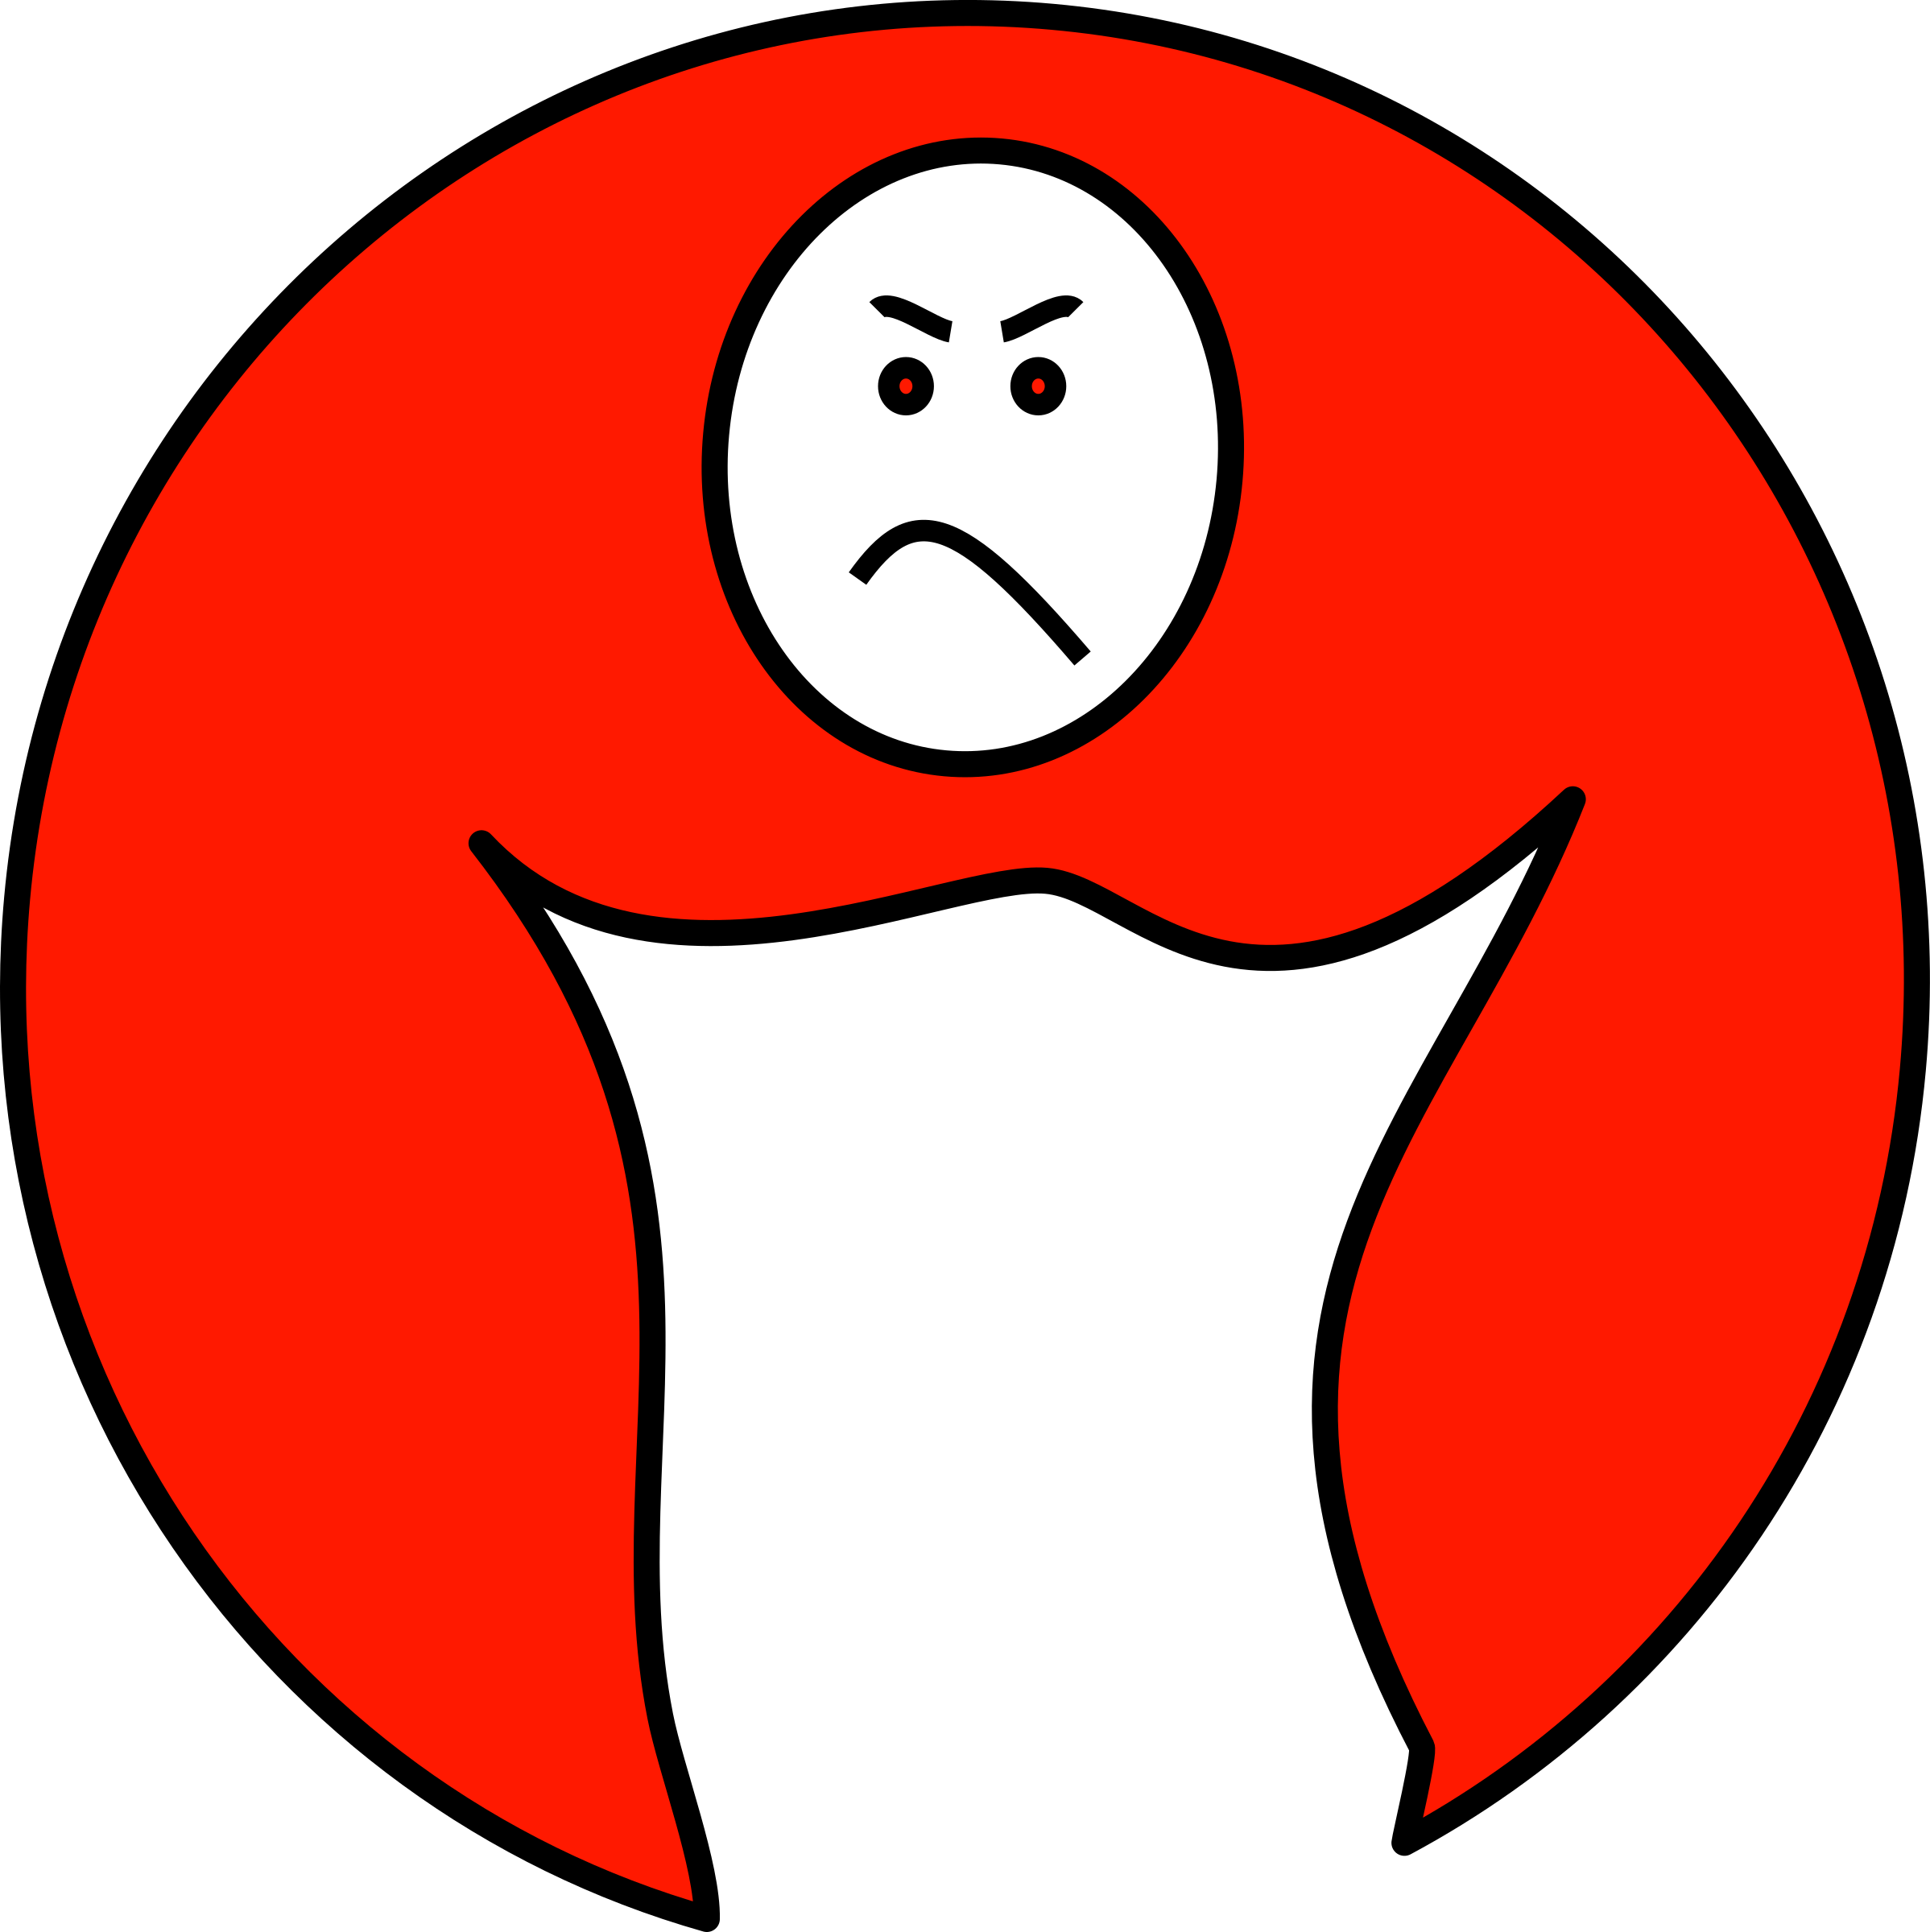 mouth clipart upset